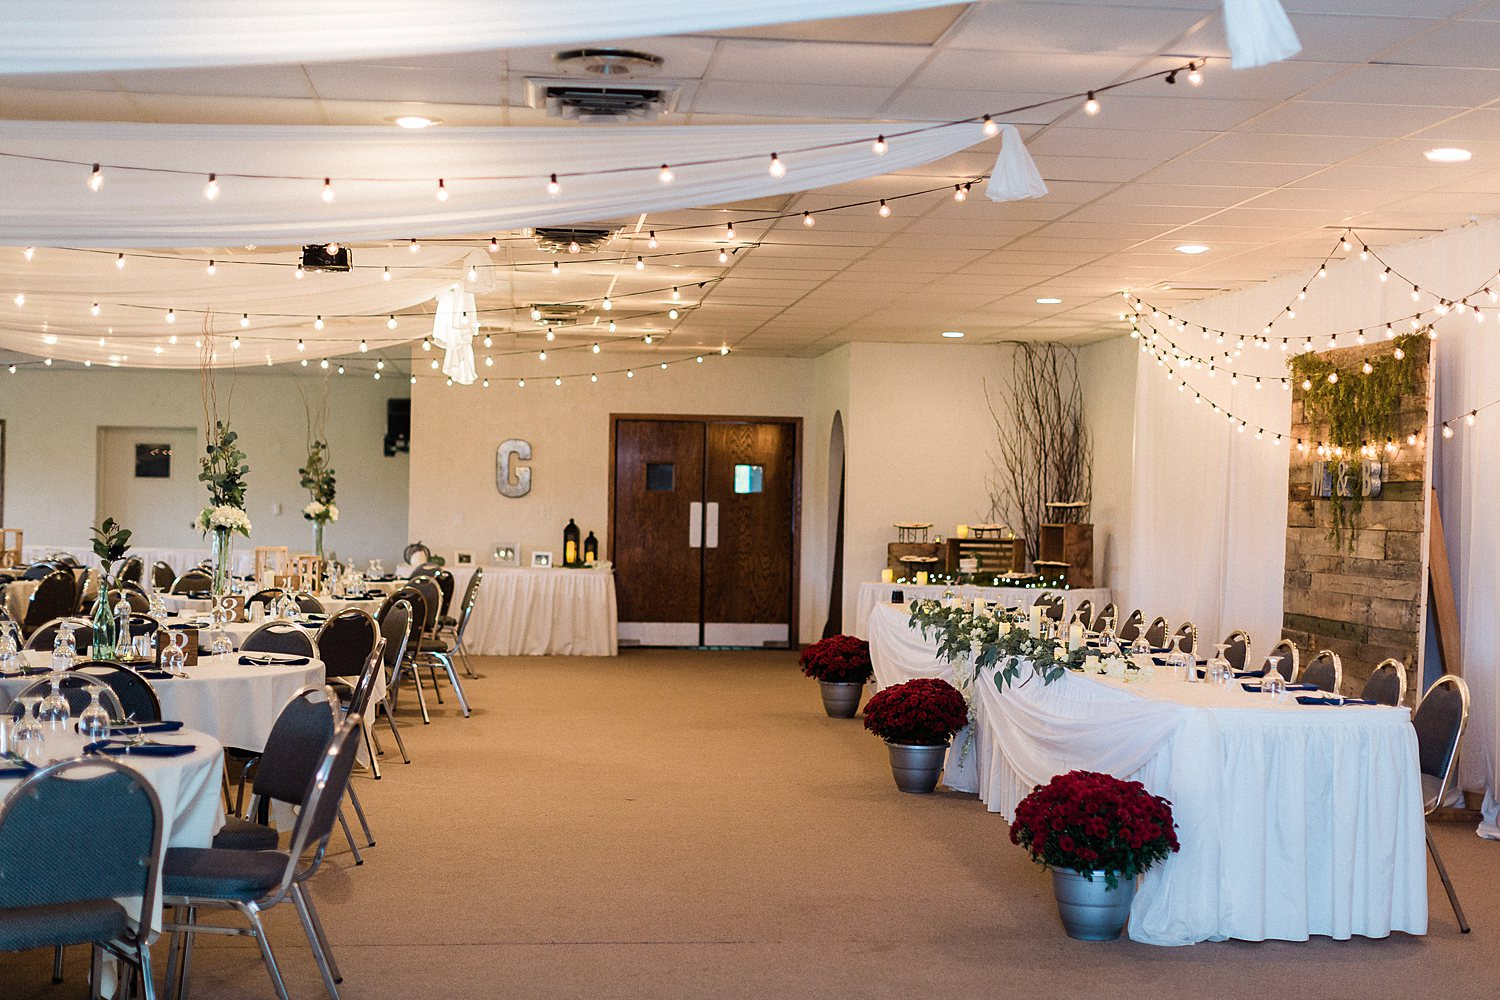 North_Central_Wisconsin_Event_Wedding_Venues_Fall_Weddings_The_Bailiwick_Venue_James-Stokes-Photography073.jpg